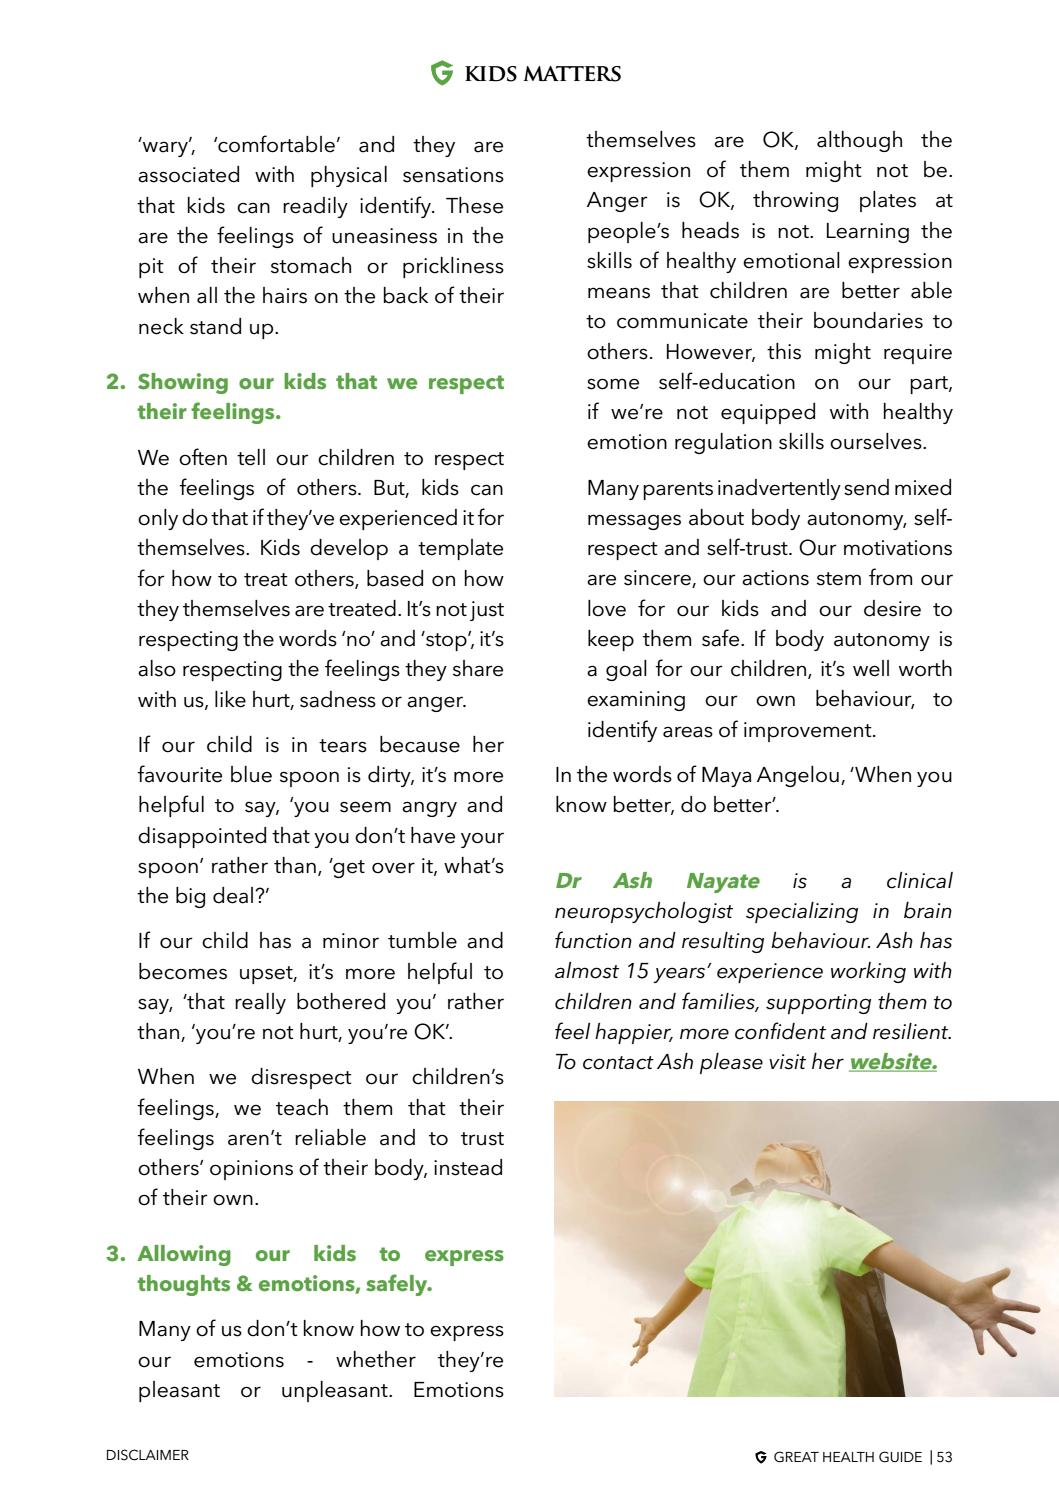 Great Health Guide: May June 2018 by Great Health Guide - issuu